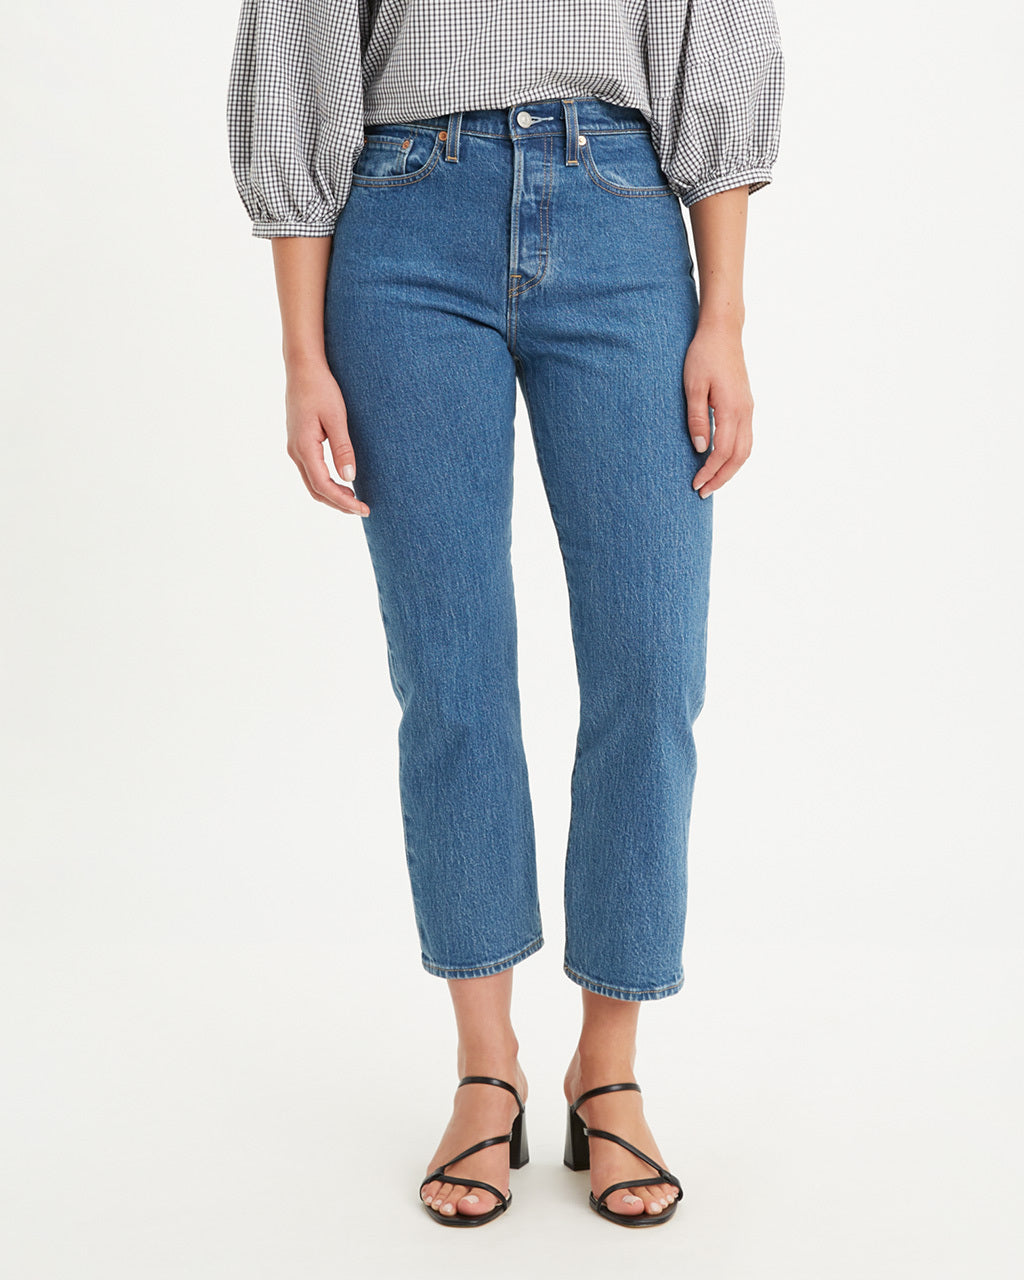 Straight-leg jeans with classic blue wash